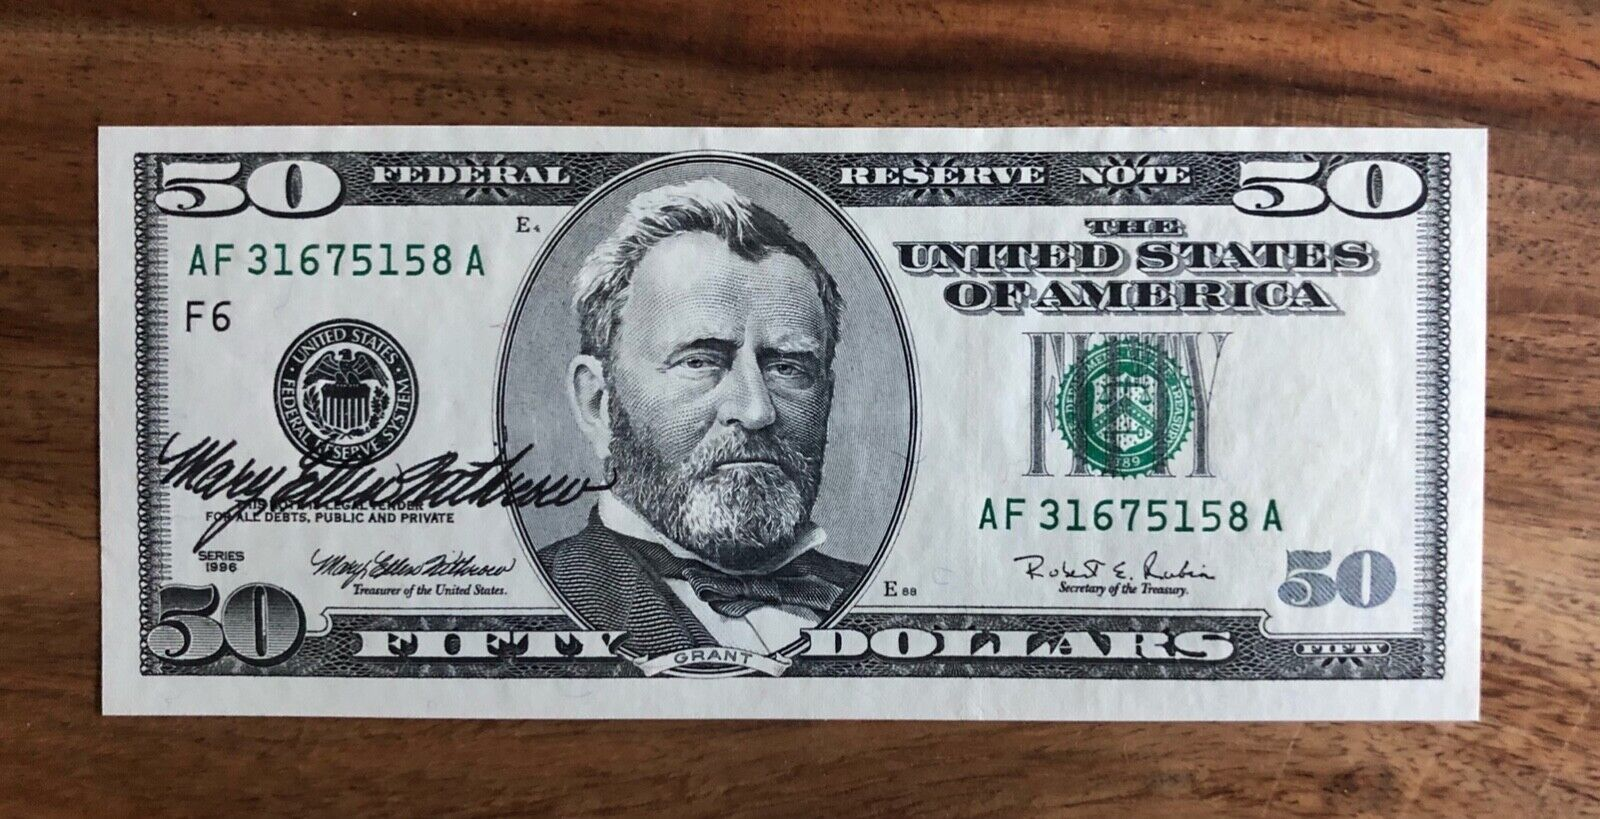 50 1996 Federal Reserve Note - Courtesy Autographed By Mary Ellen Withrow  - $70.00